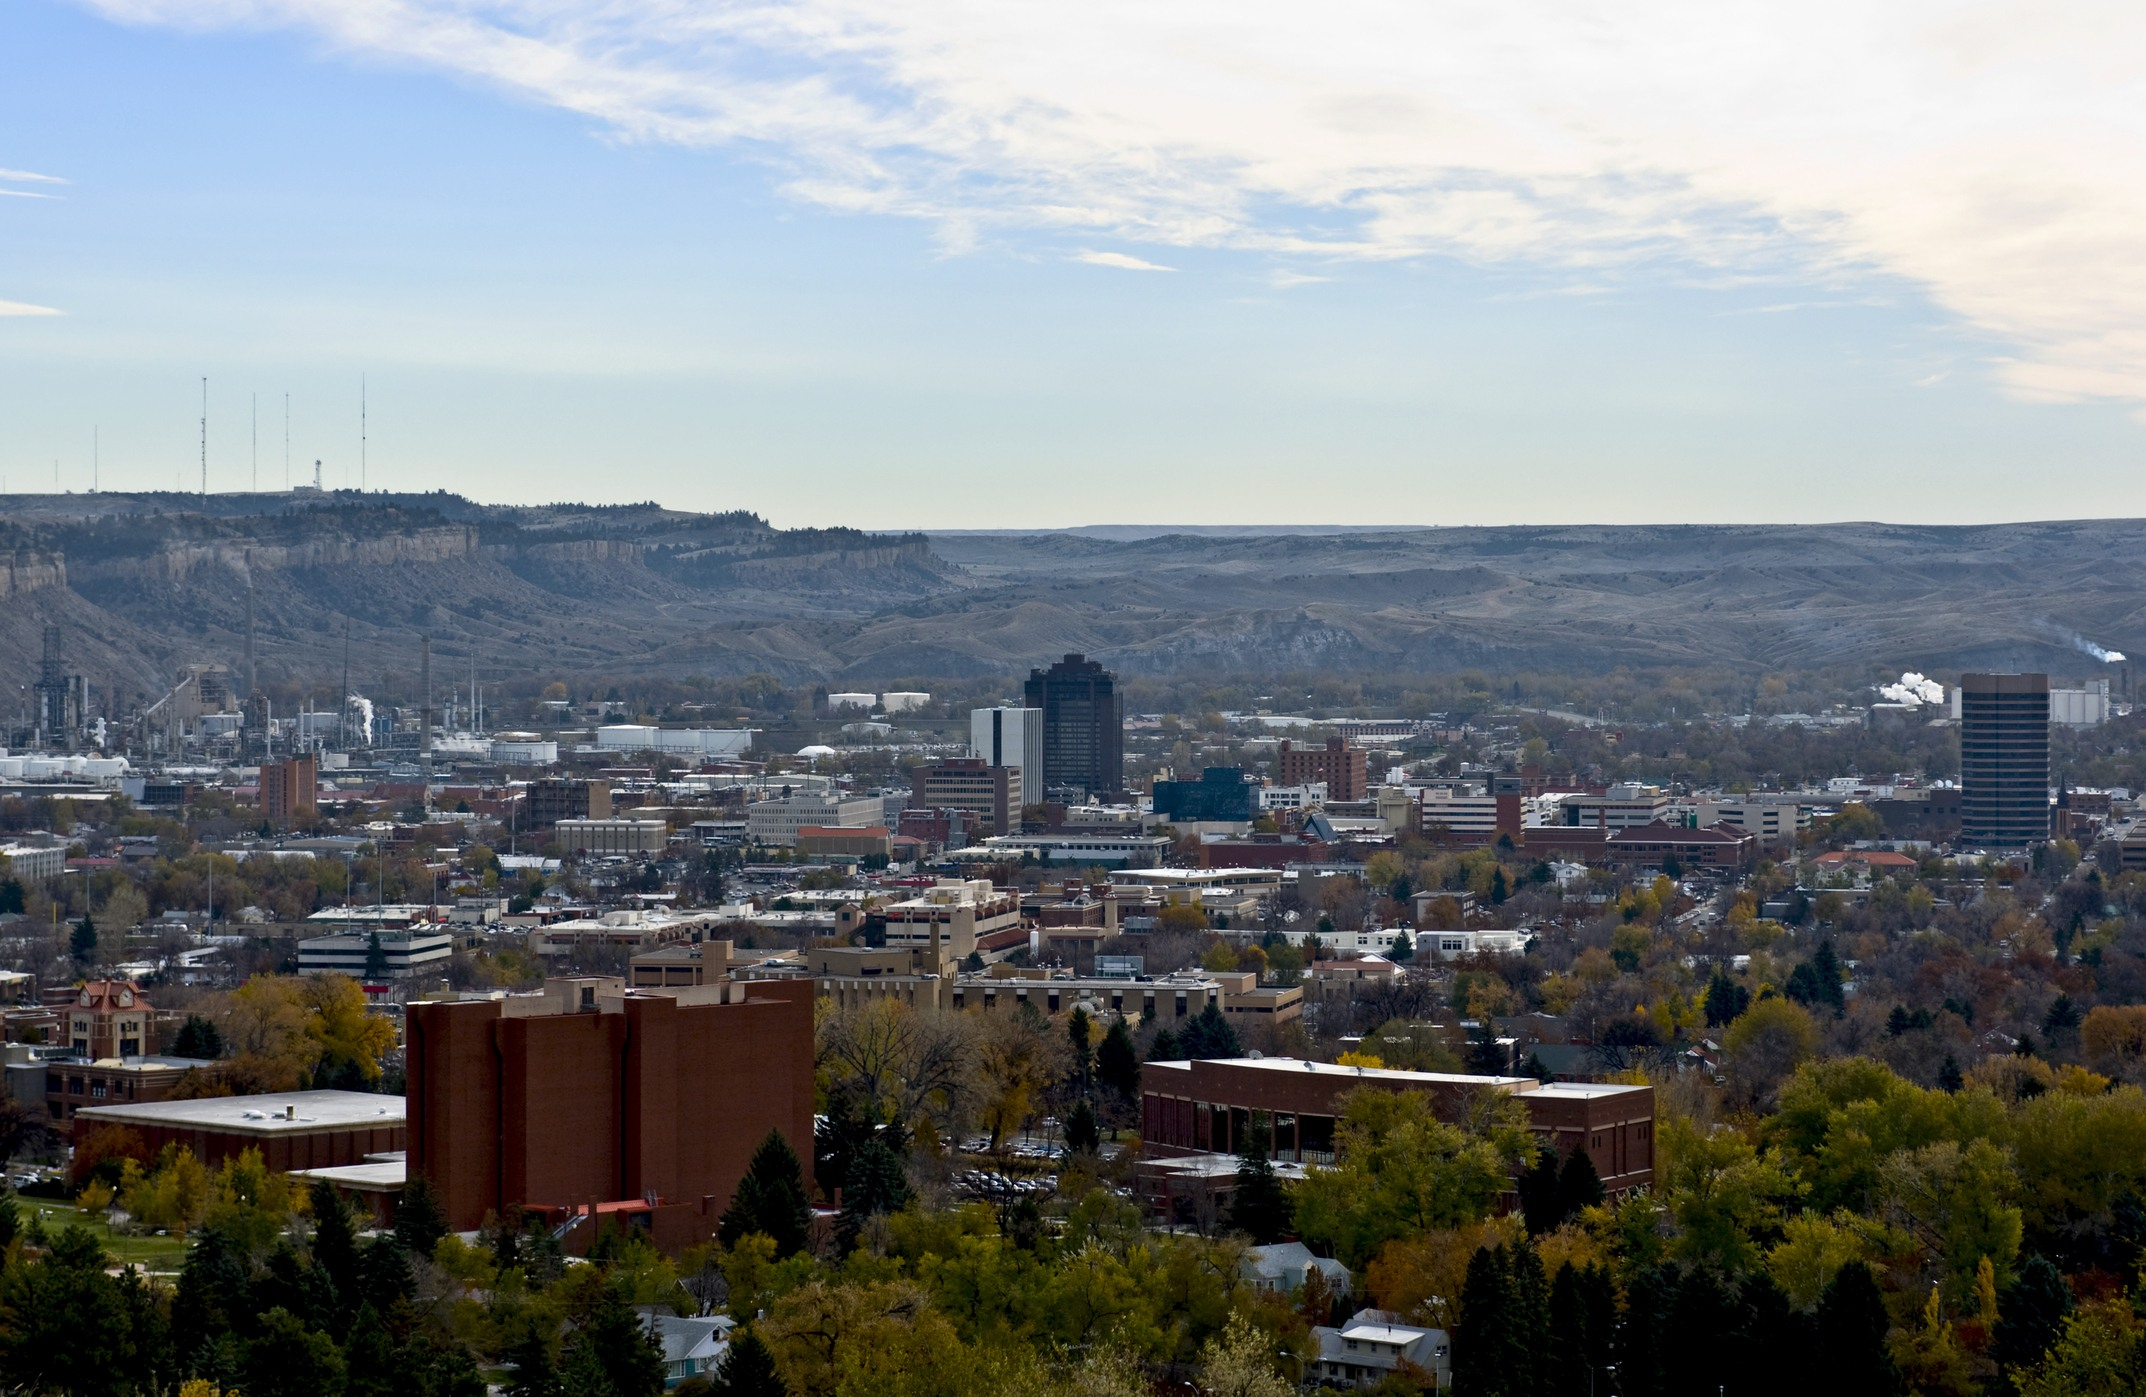 Aerial shot of Billings, Montana